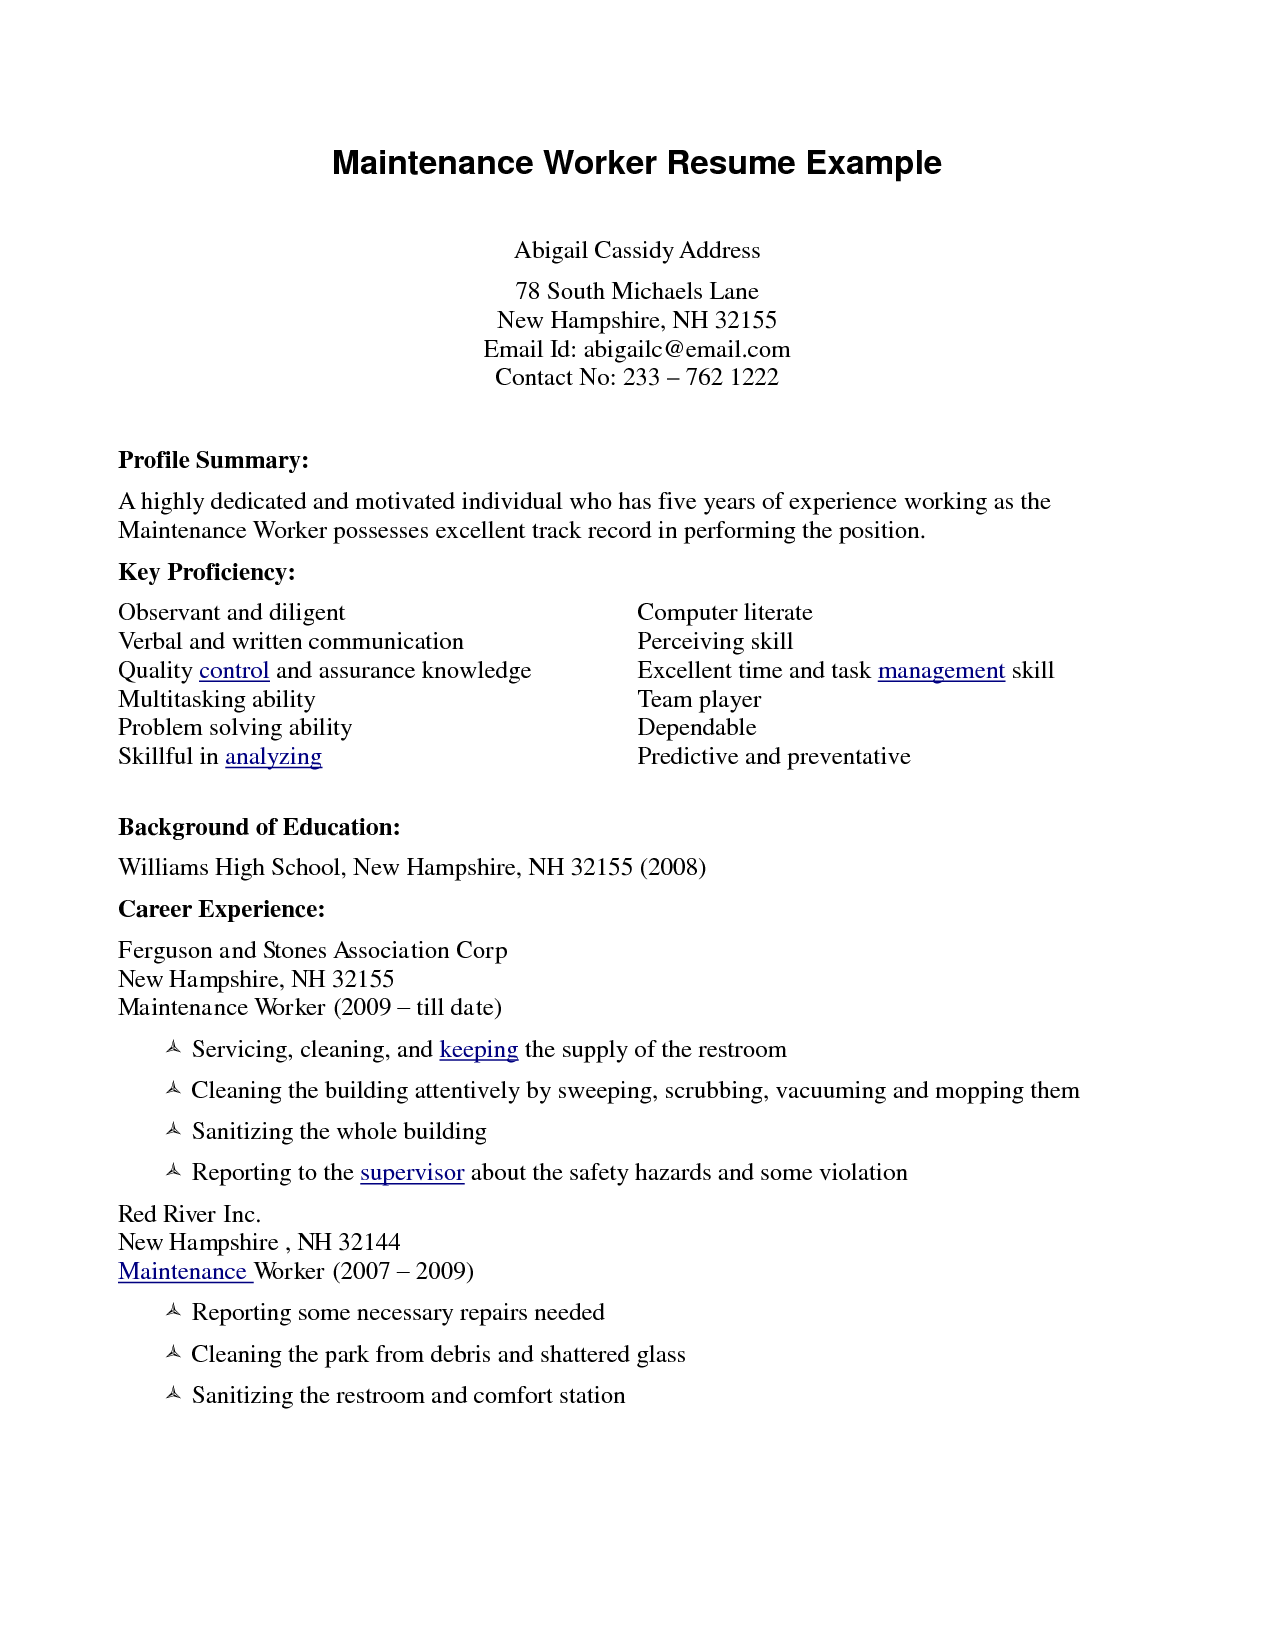 Maintenance worker resume example profile summary with